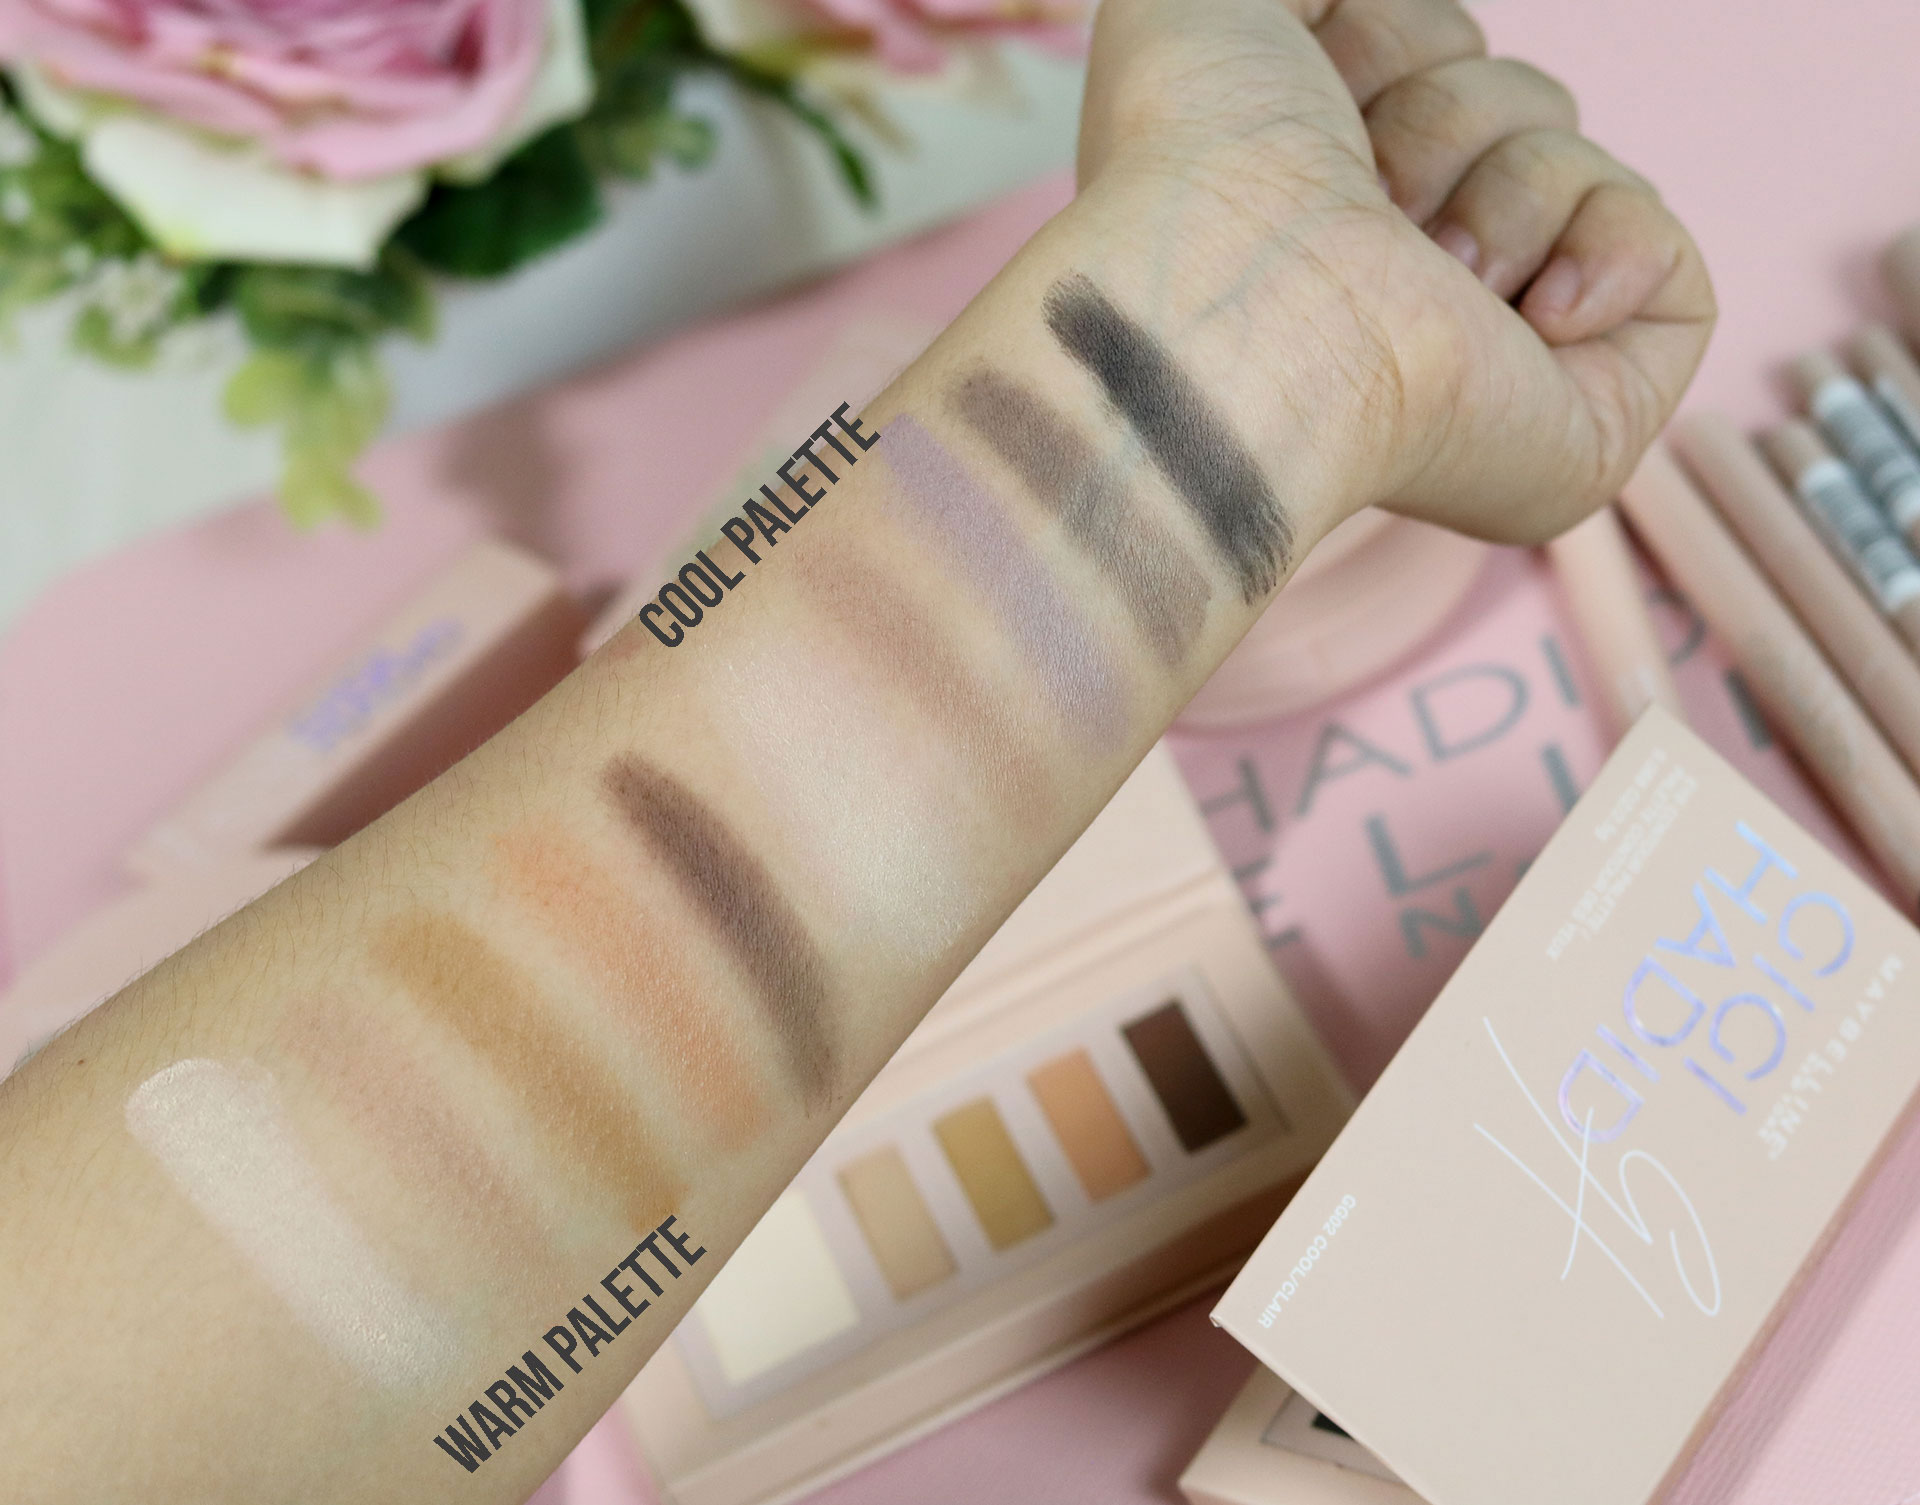 27 Gigi Hadid Maybelline Collection Review Swatches Photos - Gen-zel She Sings Beauty